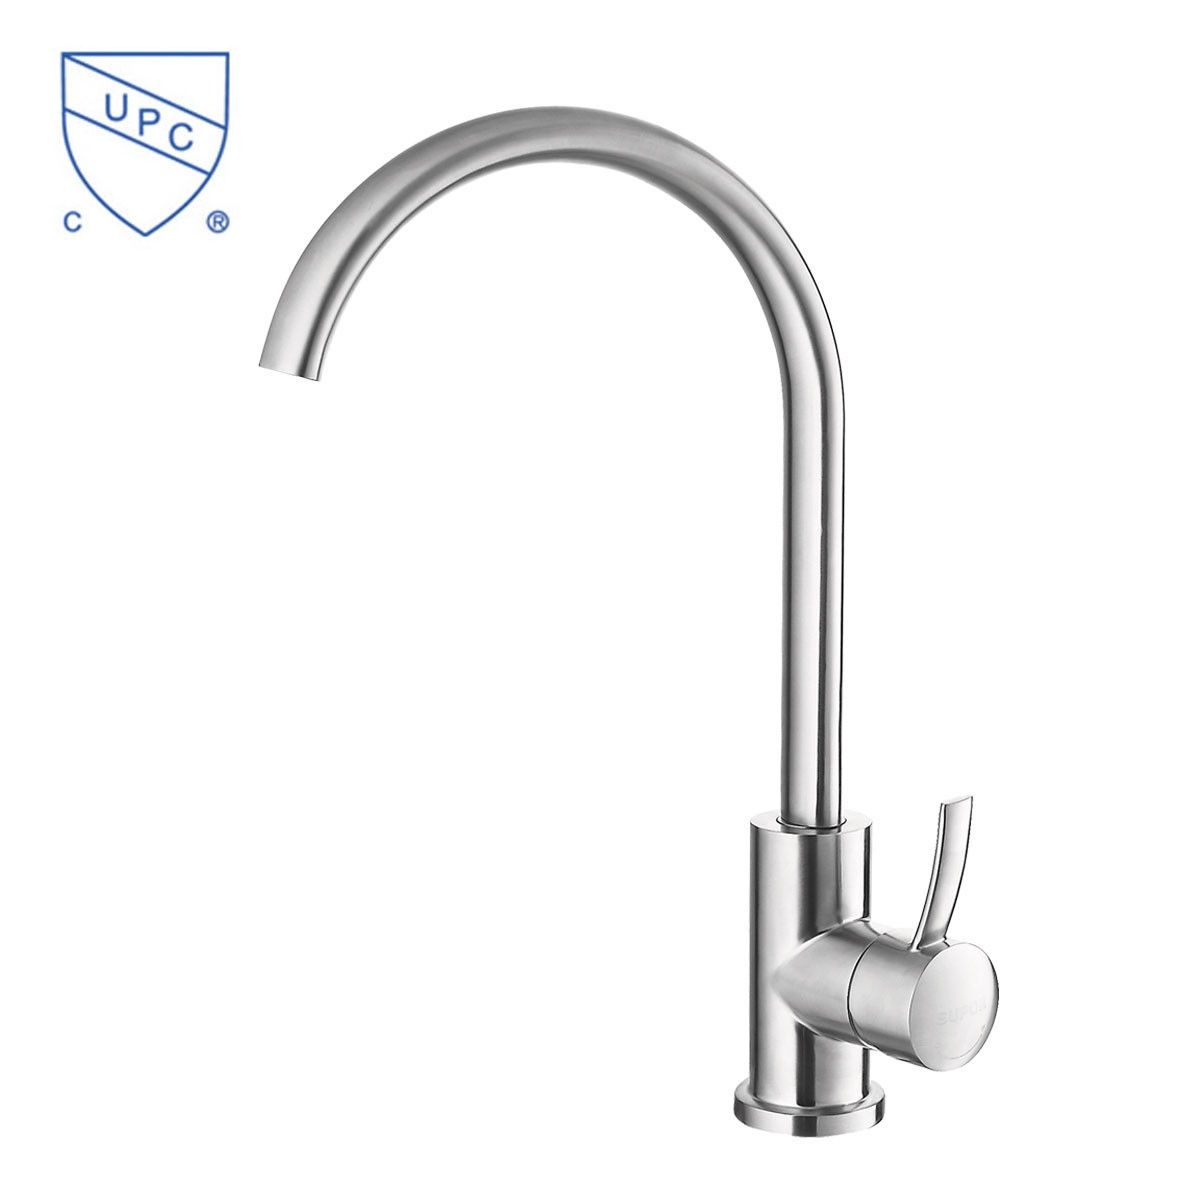 SUPOR Modern Style Stainless Steel Lead Free Kitchen Faucet (250807 01 LS)    Decoraport USA